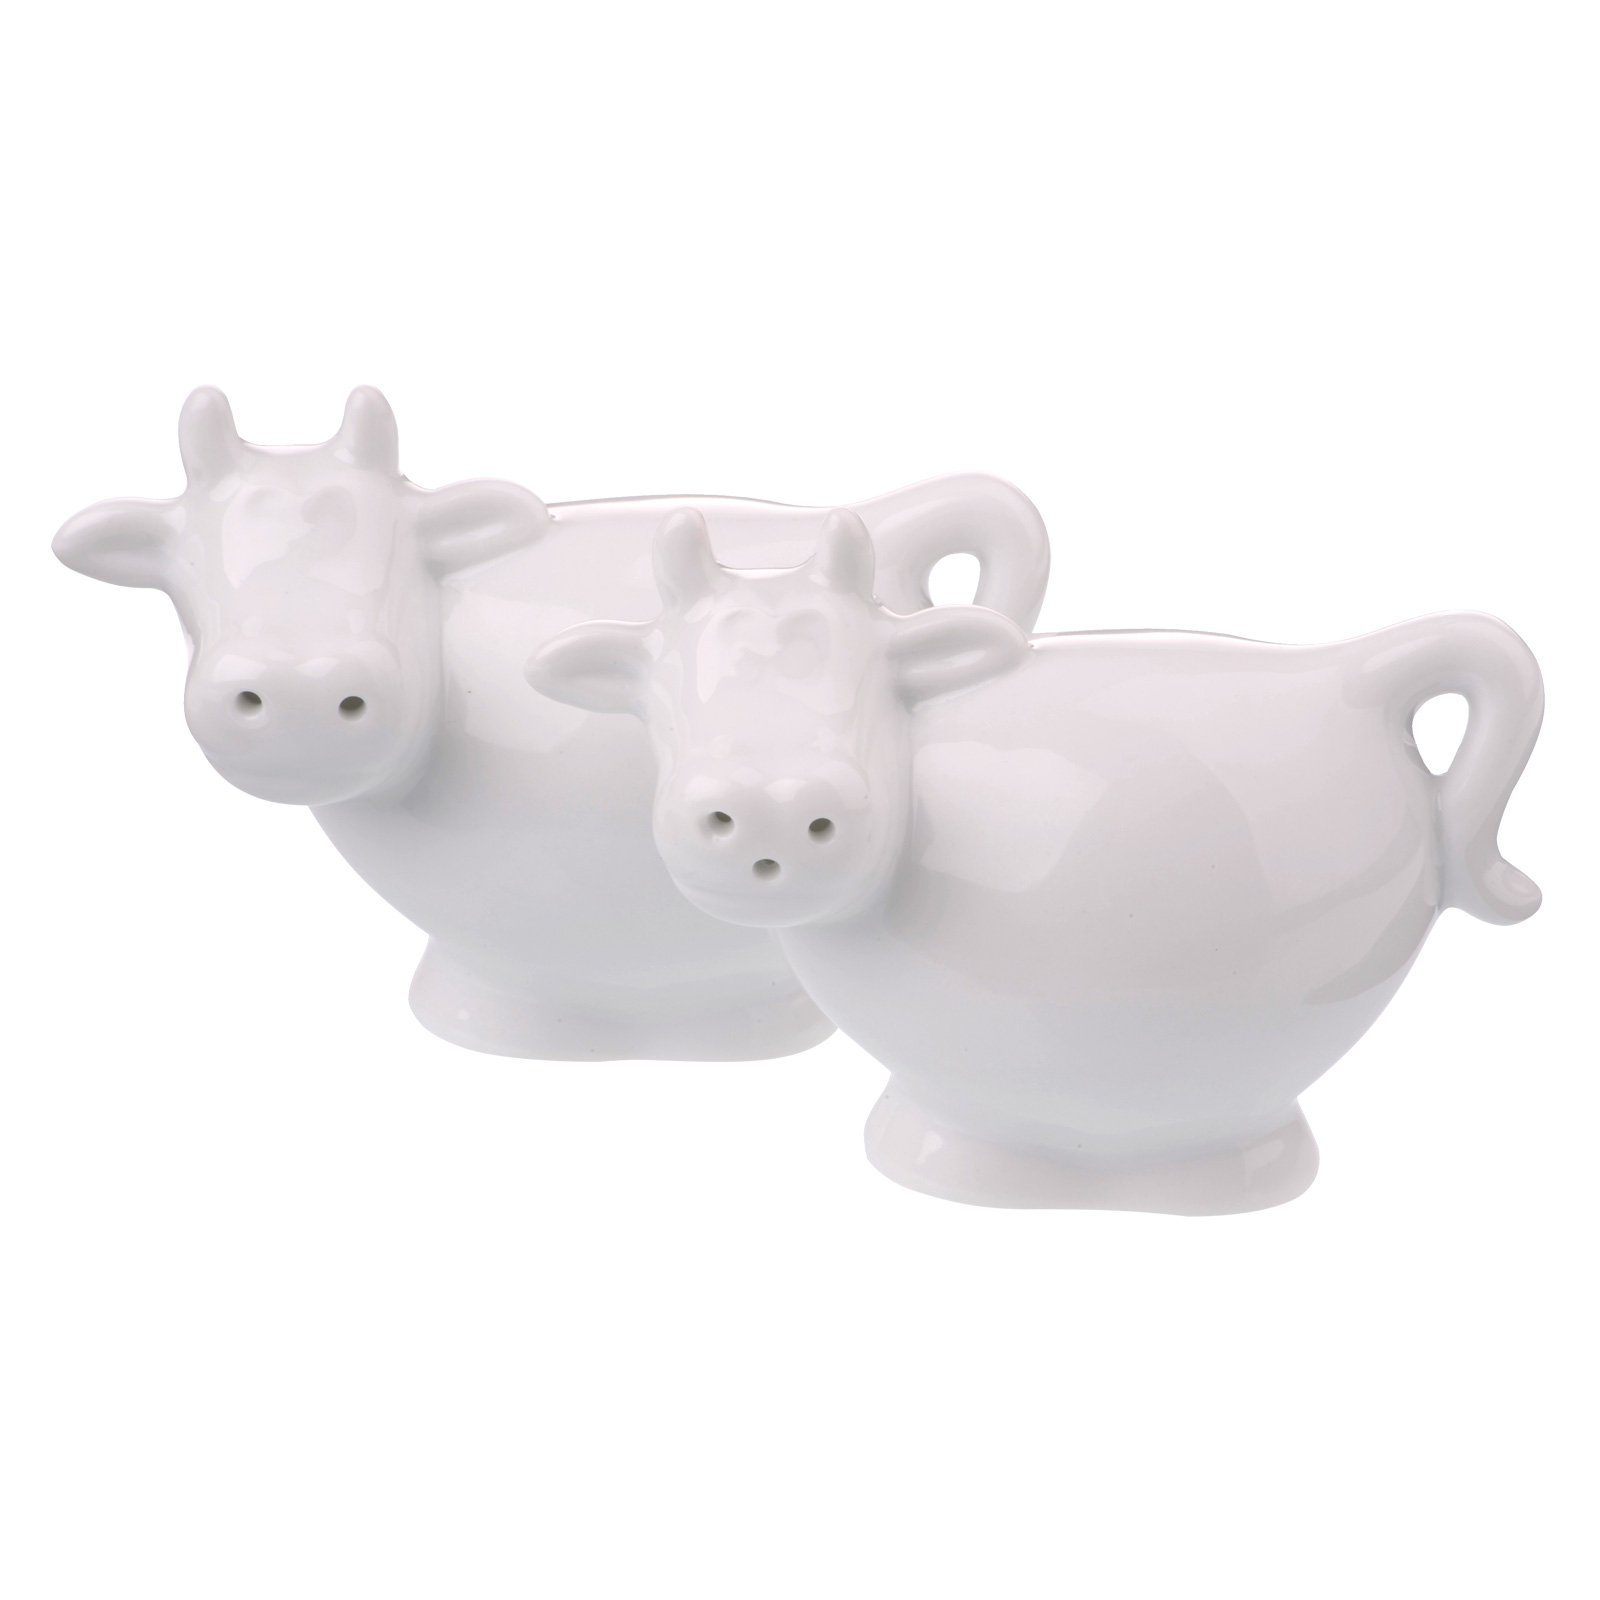 Cow Salt & Pepper Shakers by BIA